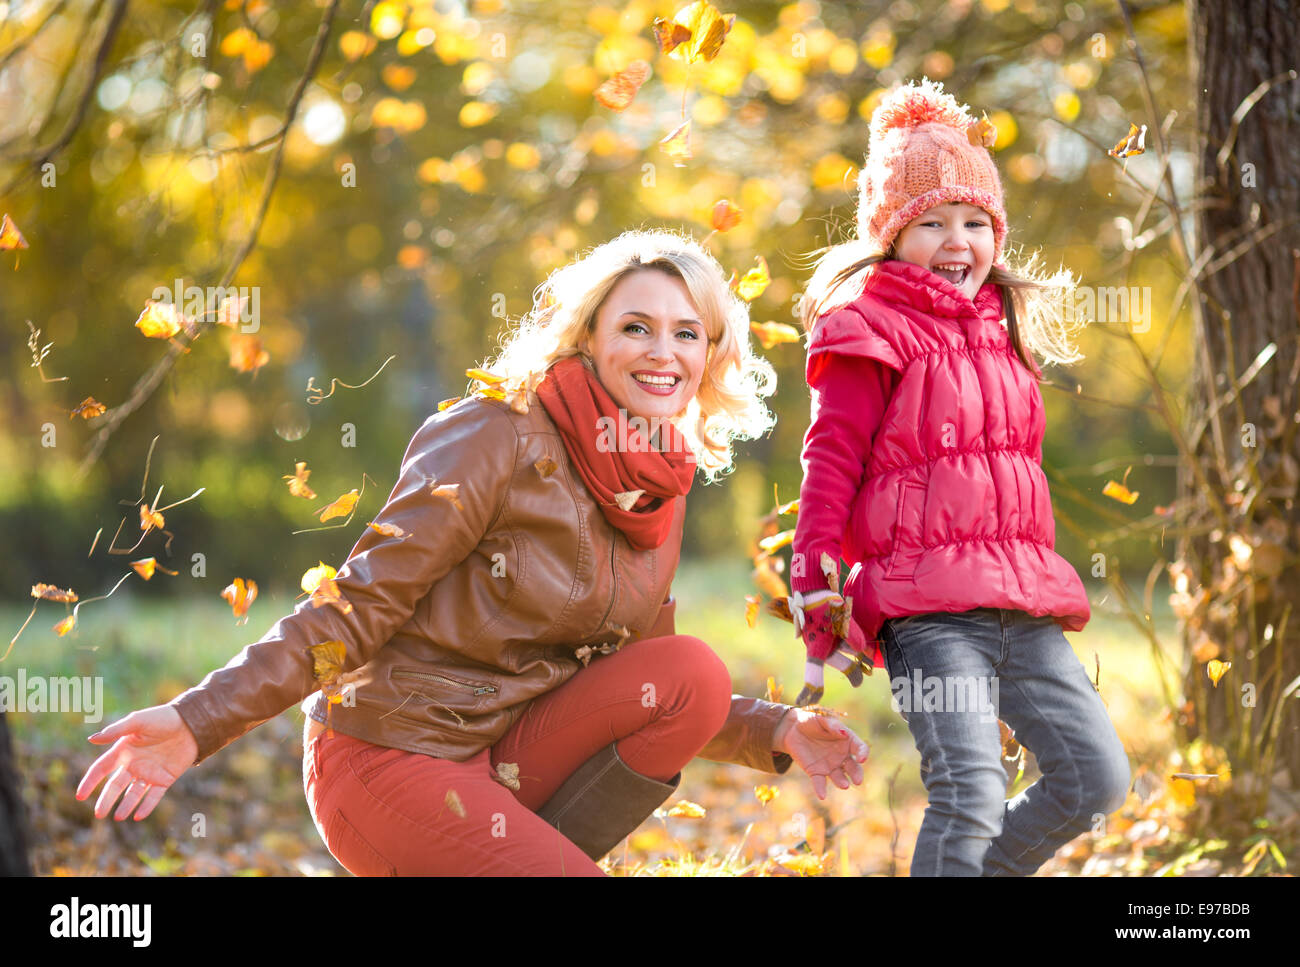 Happy parent and kid outdoor playing with autumn yellow leaves - Stock Image